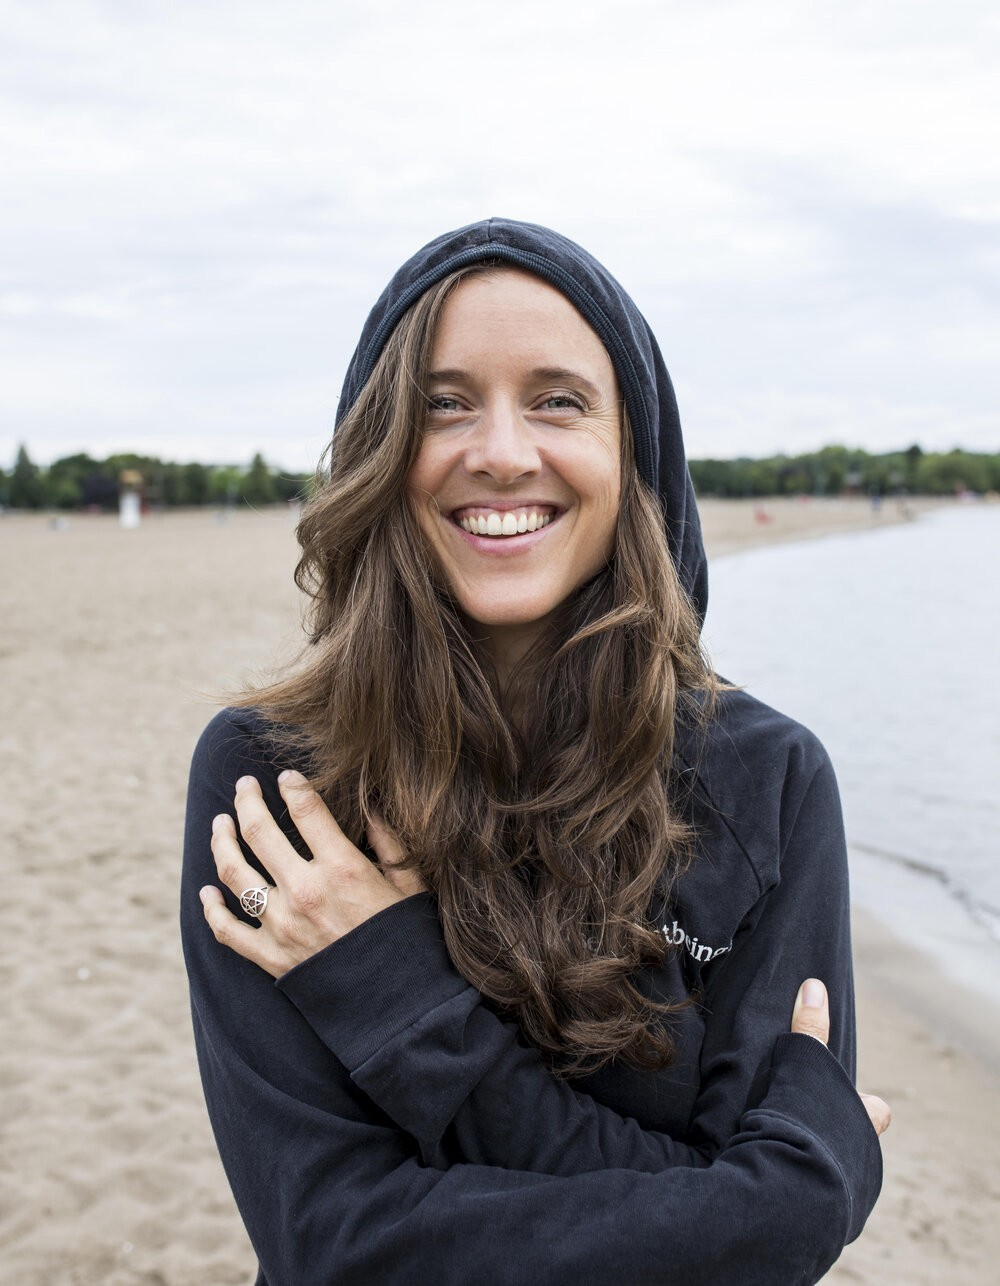 Photo of the interview subject, Jo-Anne McArthur, smiling widely on a beach, wearing a navy hoodie